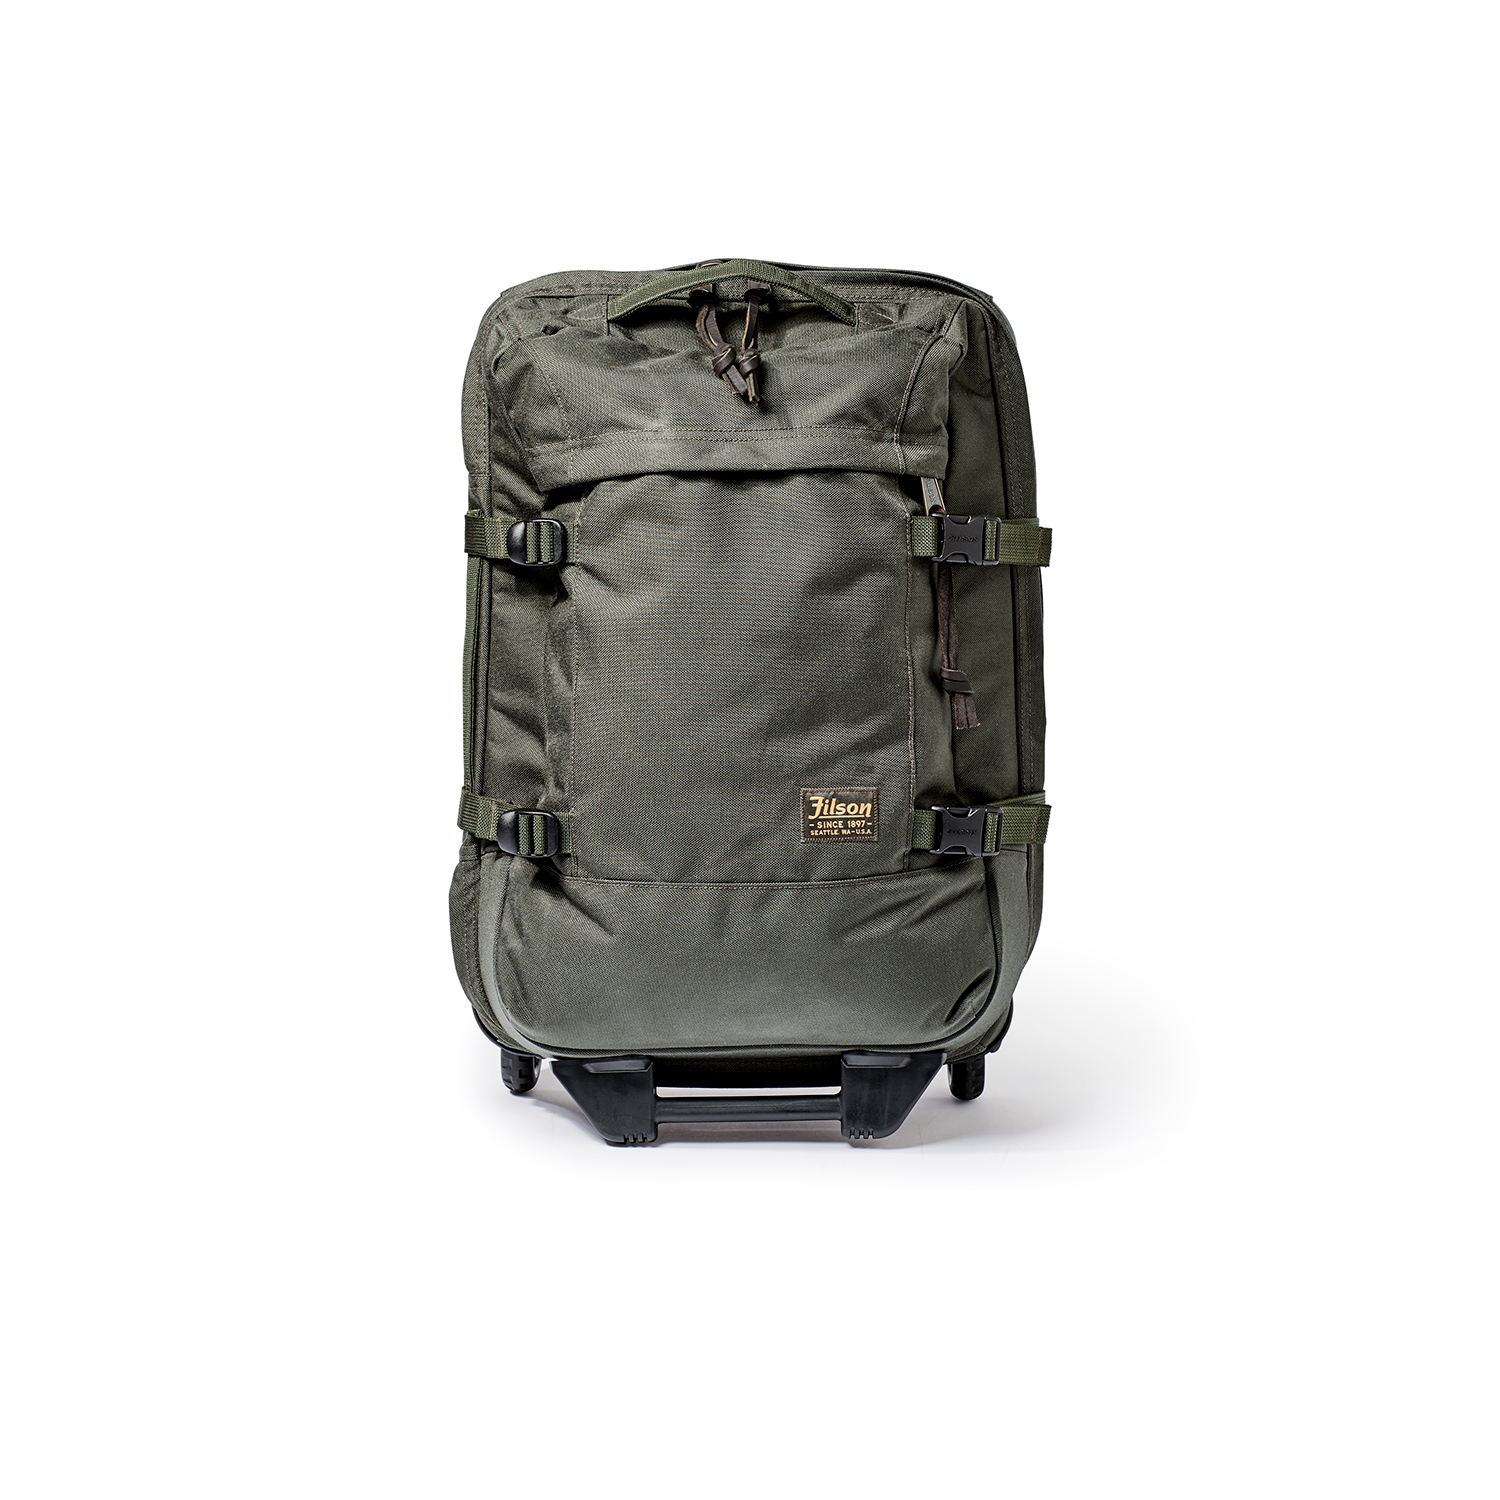 85305badfc44 Filson Dryden 2-Wheeled Carry-On Bag with Free S H — CampSaver